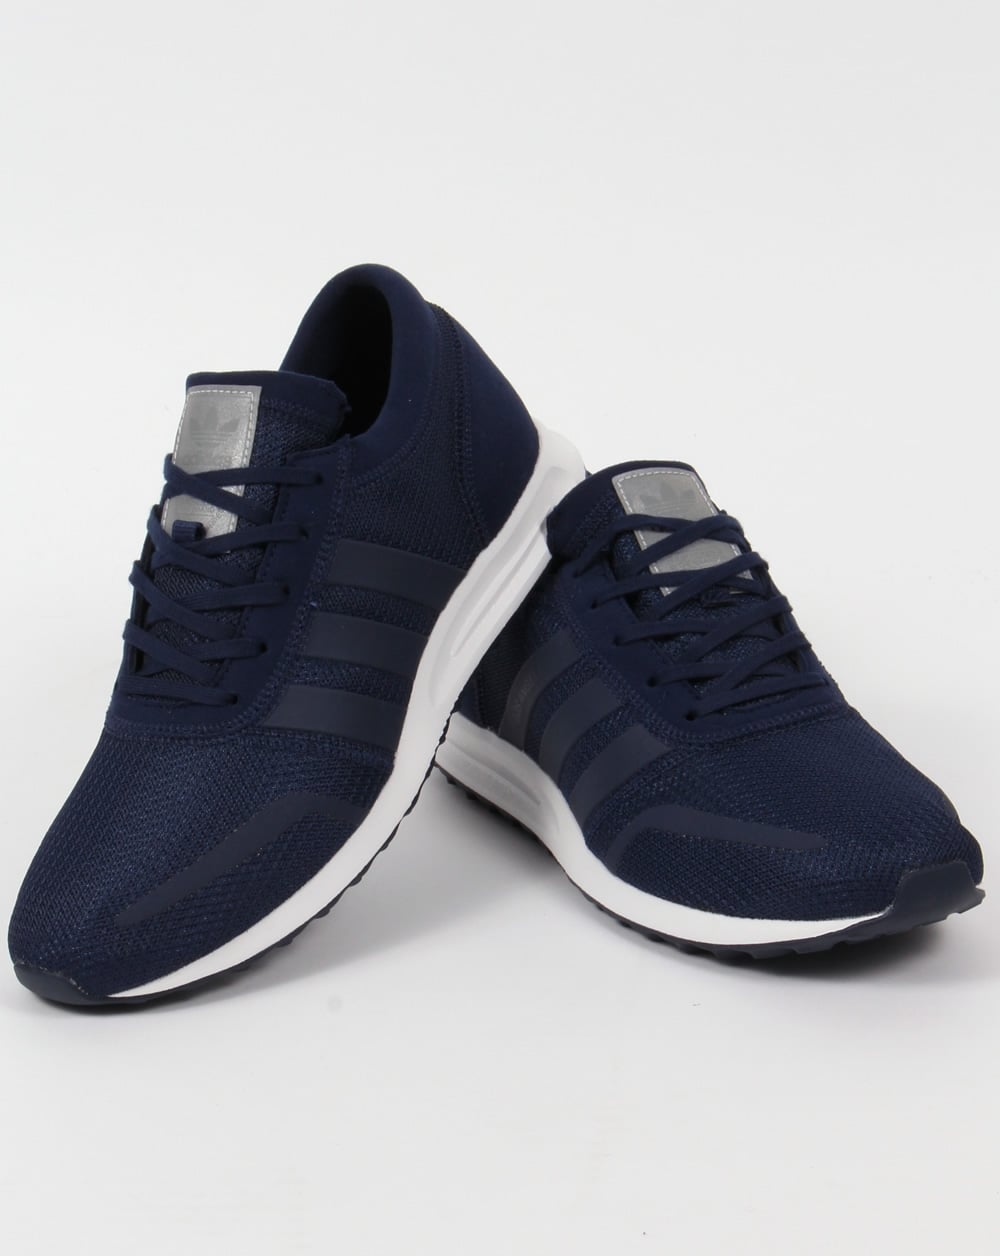 adidas trainers navy